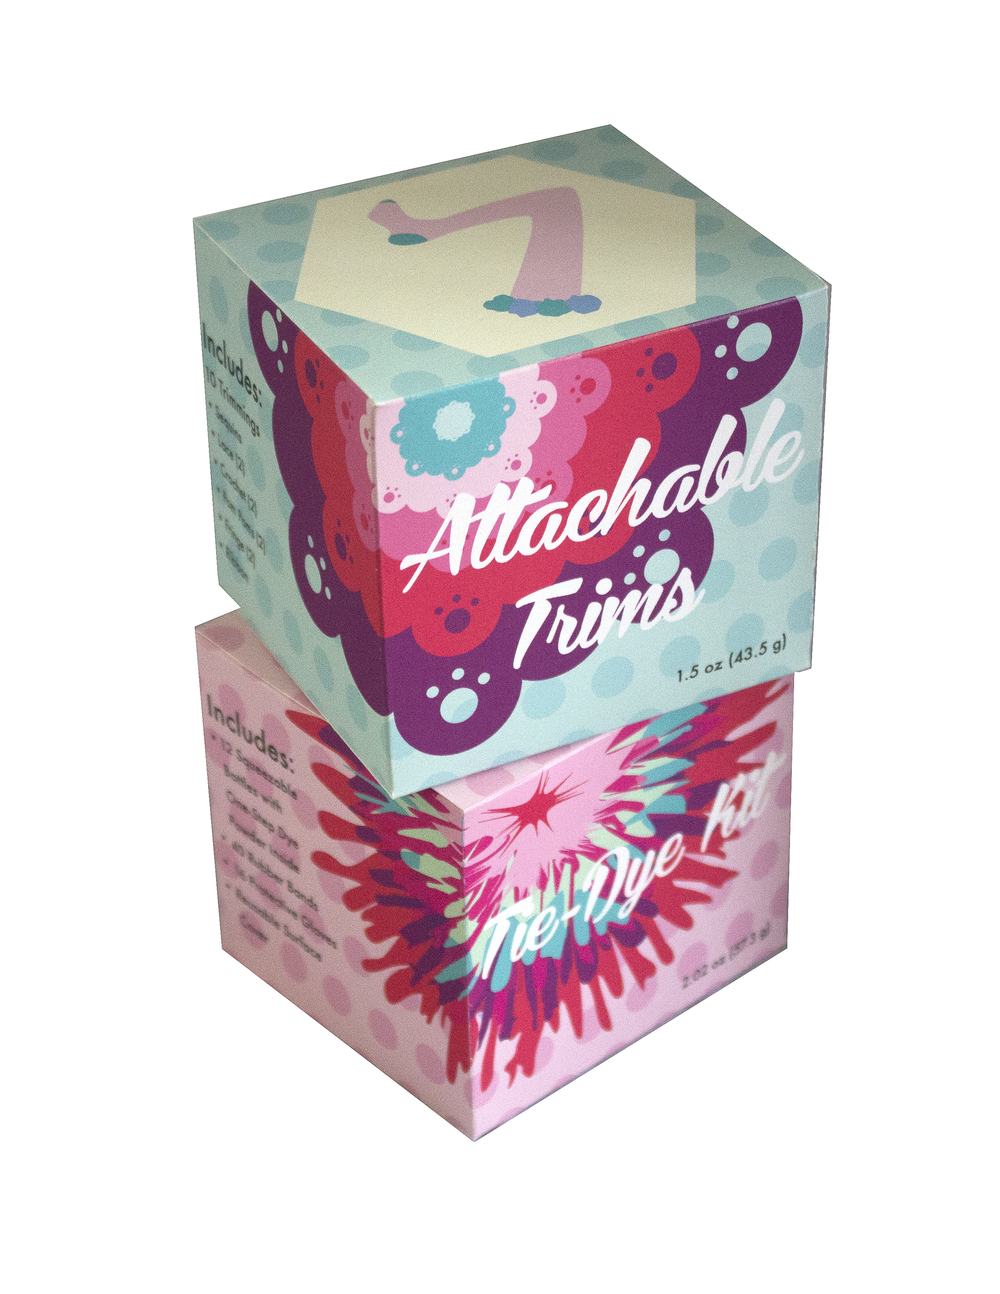 Product Packaging (Front)